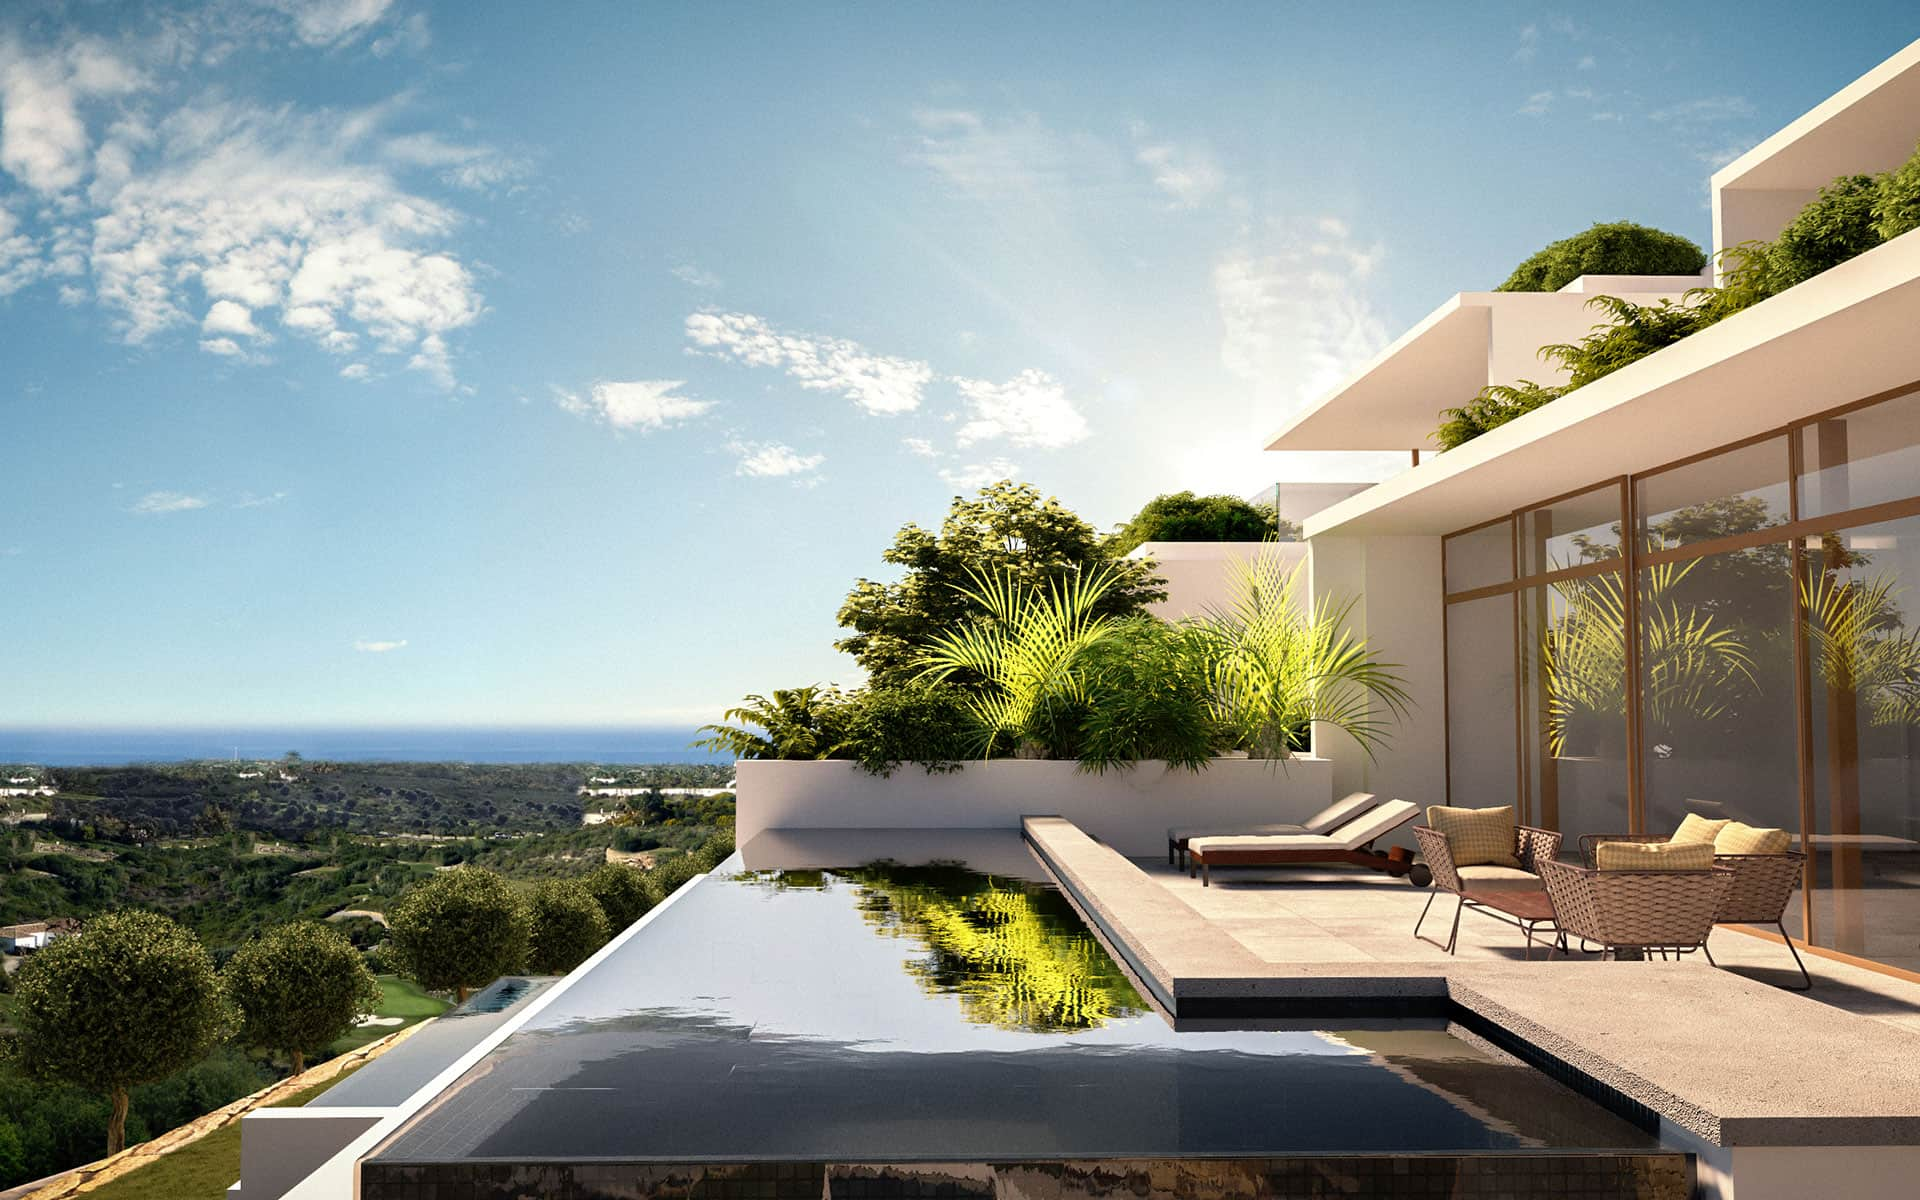 Finca Cortesin Las Albercas residences for sale